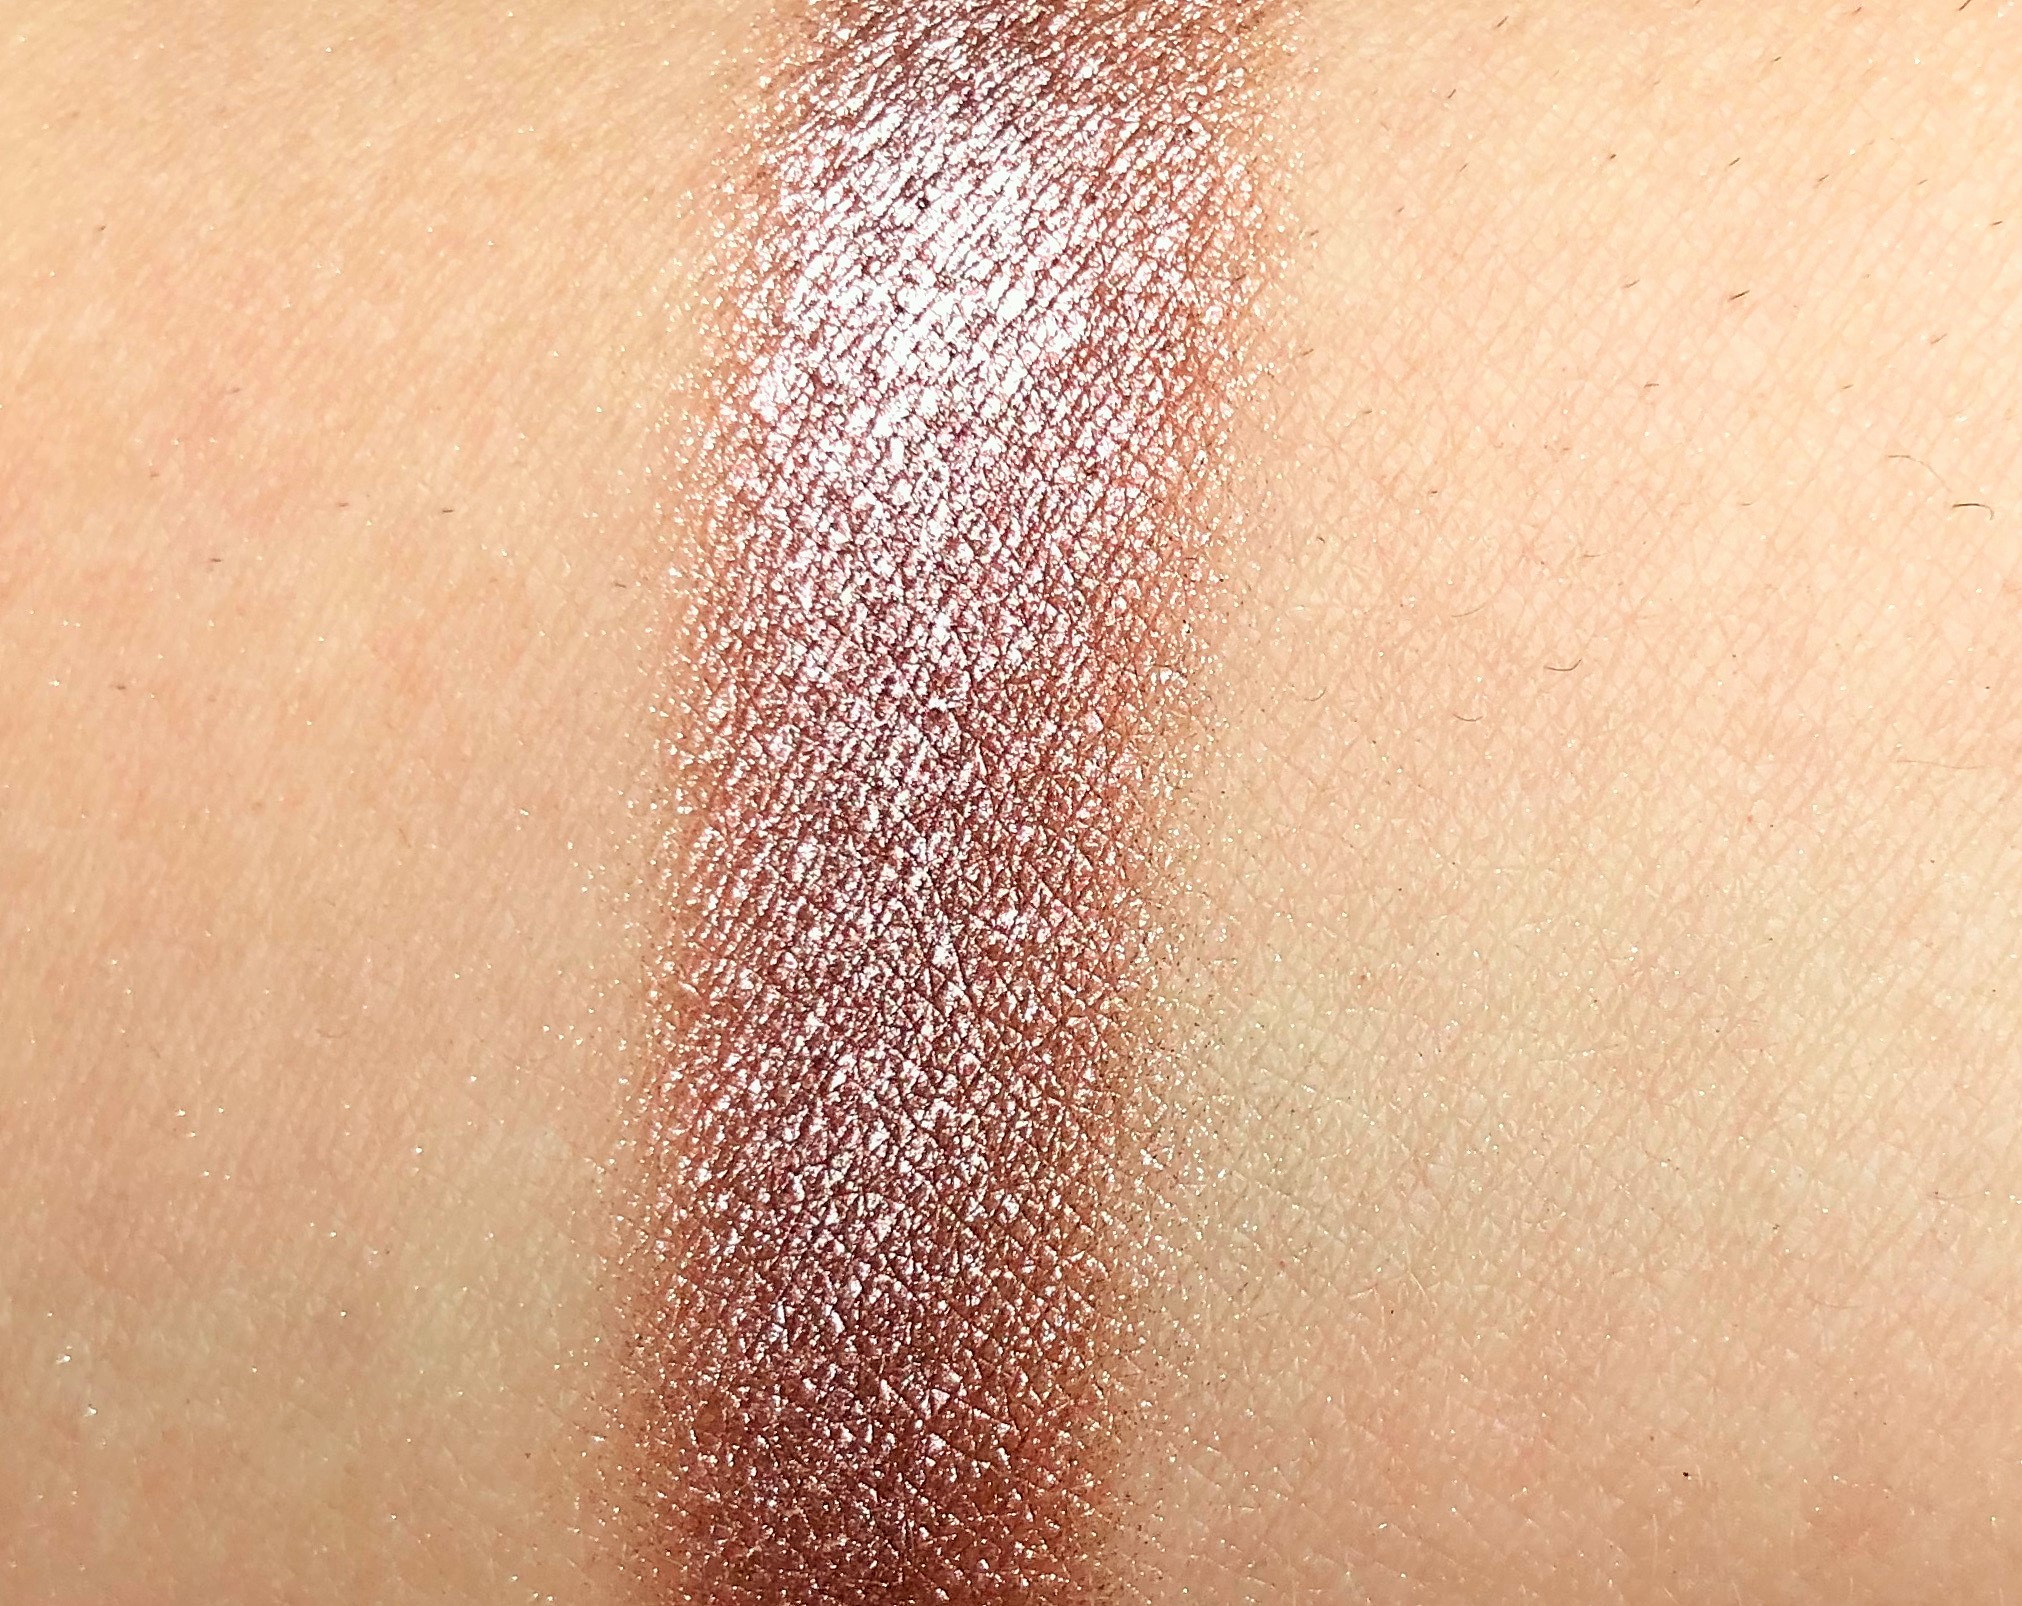 Recensione Essence Zink About You Melted Chrome Eyeshadow (5)